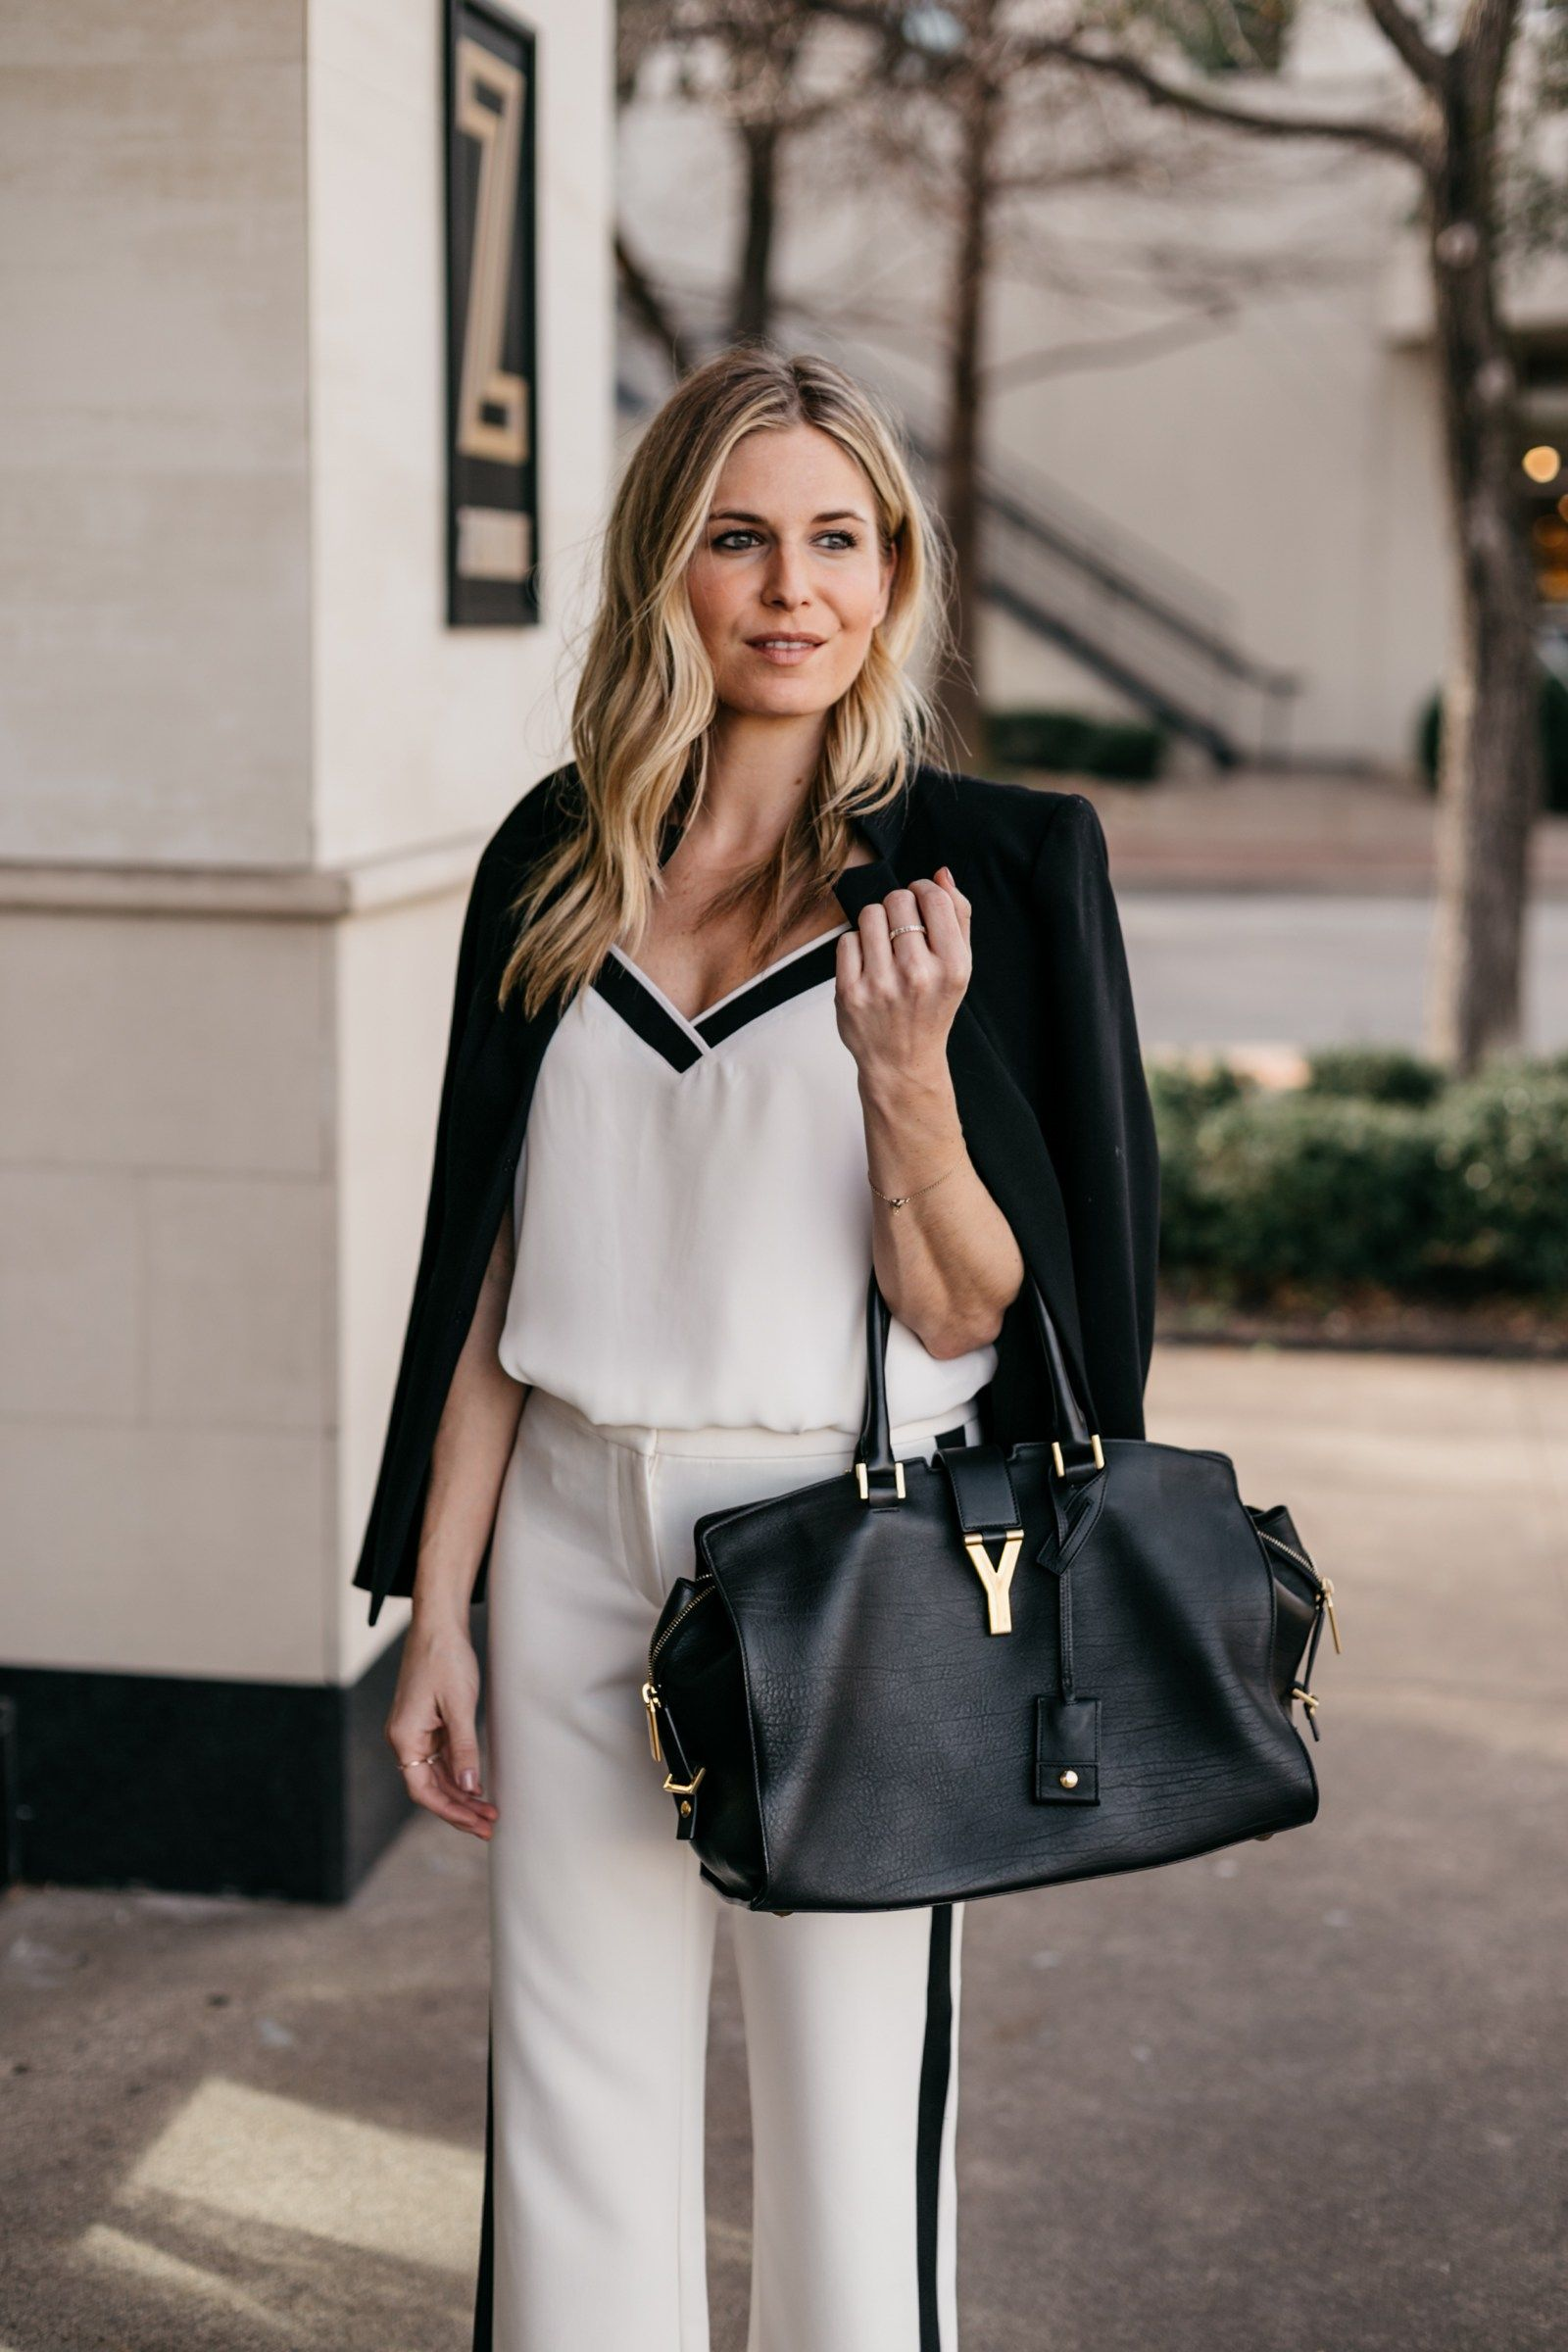 361a4cc6773 Sharing 5 ways to wear white pants for work! A blazer is a great staple